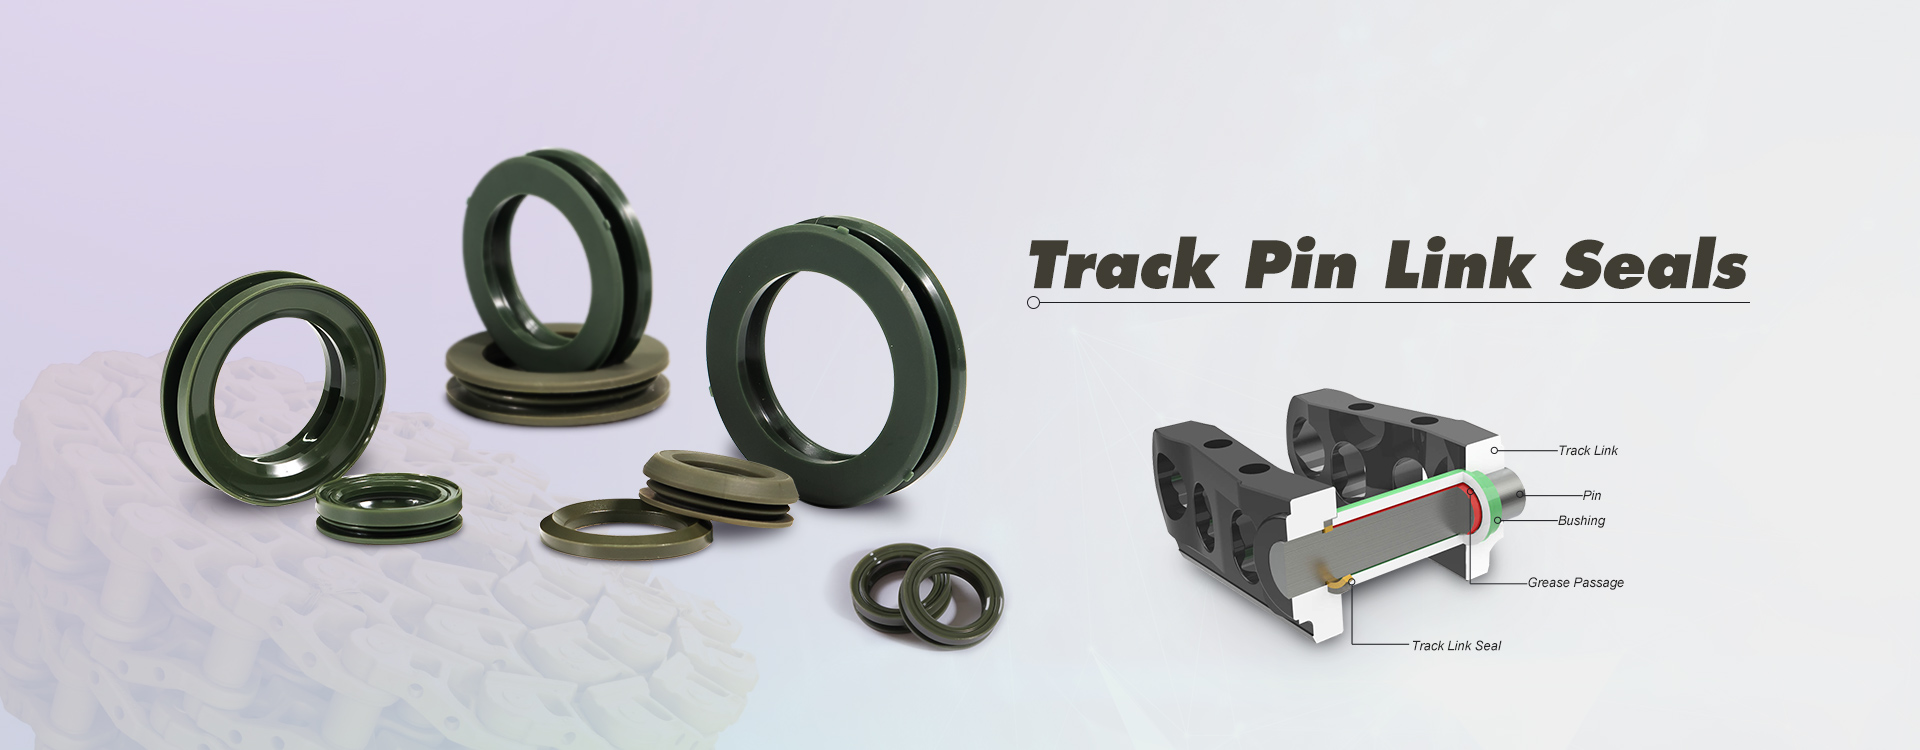 Hydraulic Seals, Seal Kits, Replacement OEM Seals - JSPSEAL